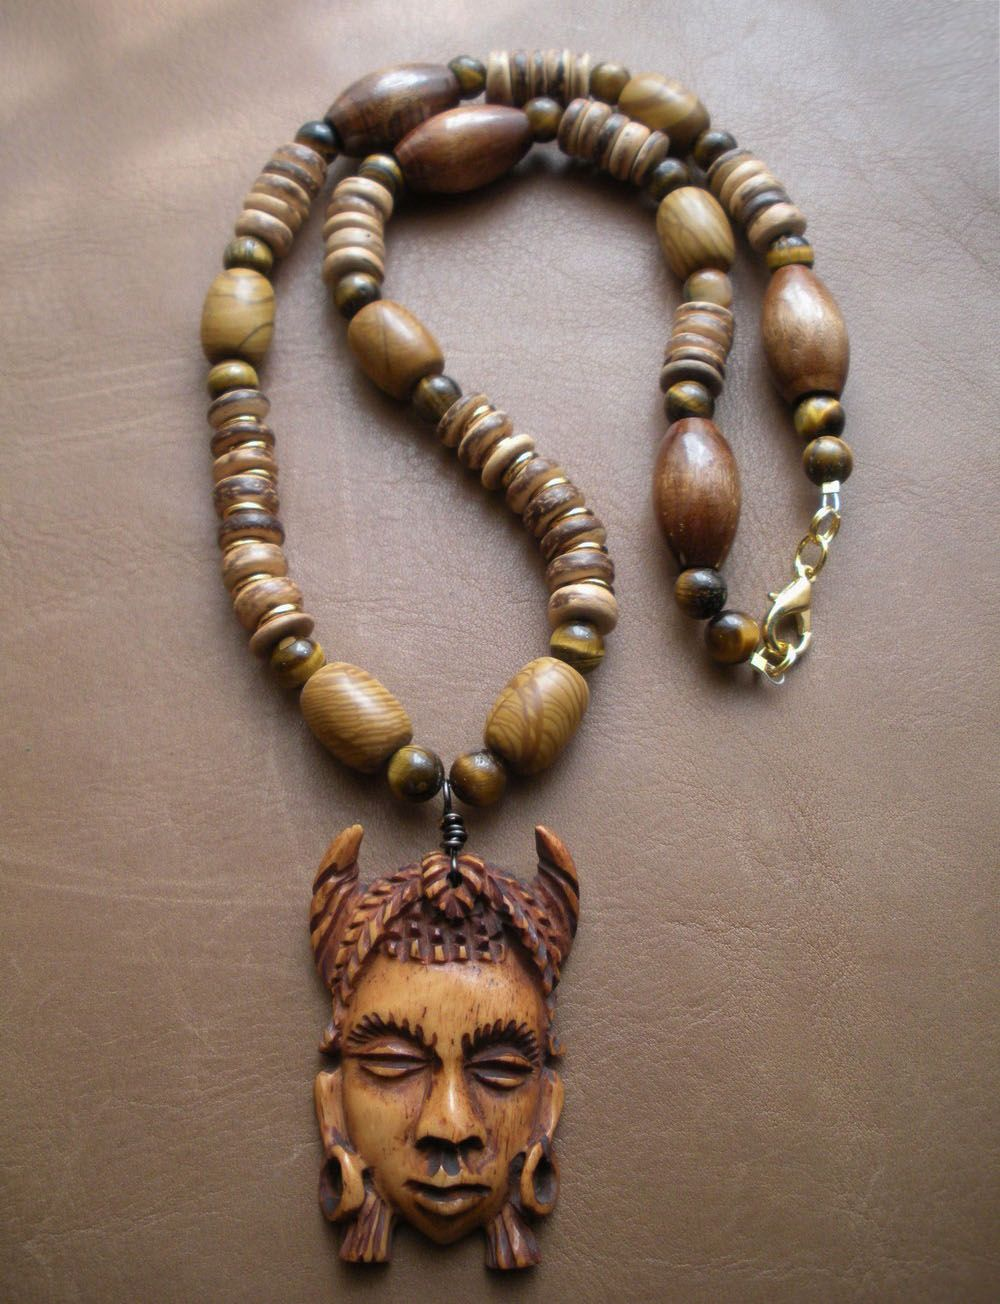 african jewelry   African and Tribal Jewelry for Men   Tribal and ...